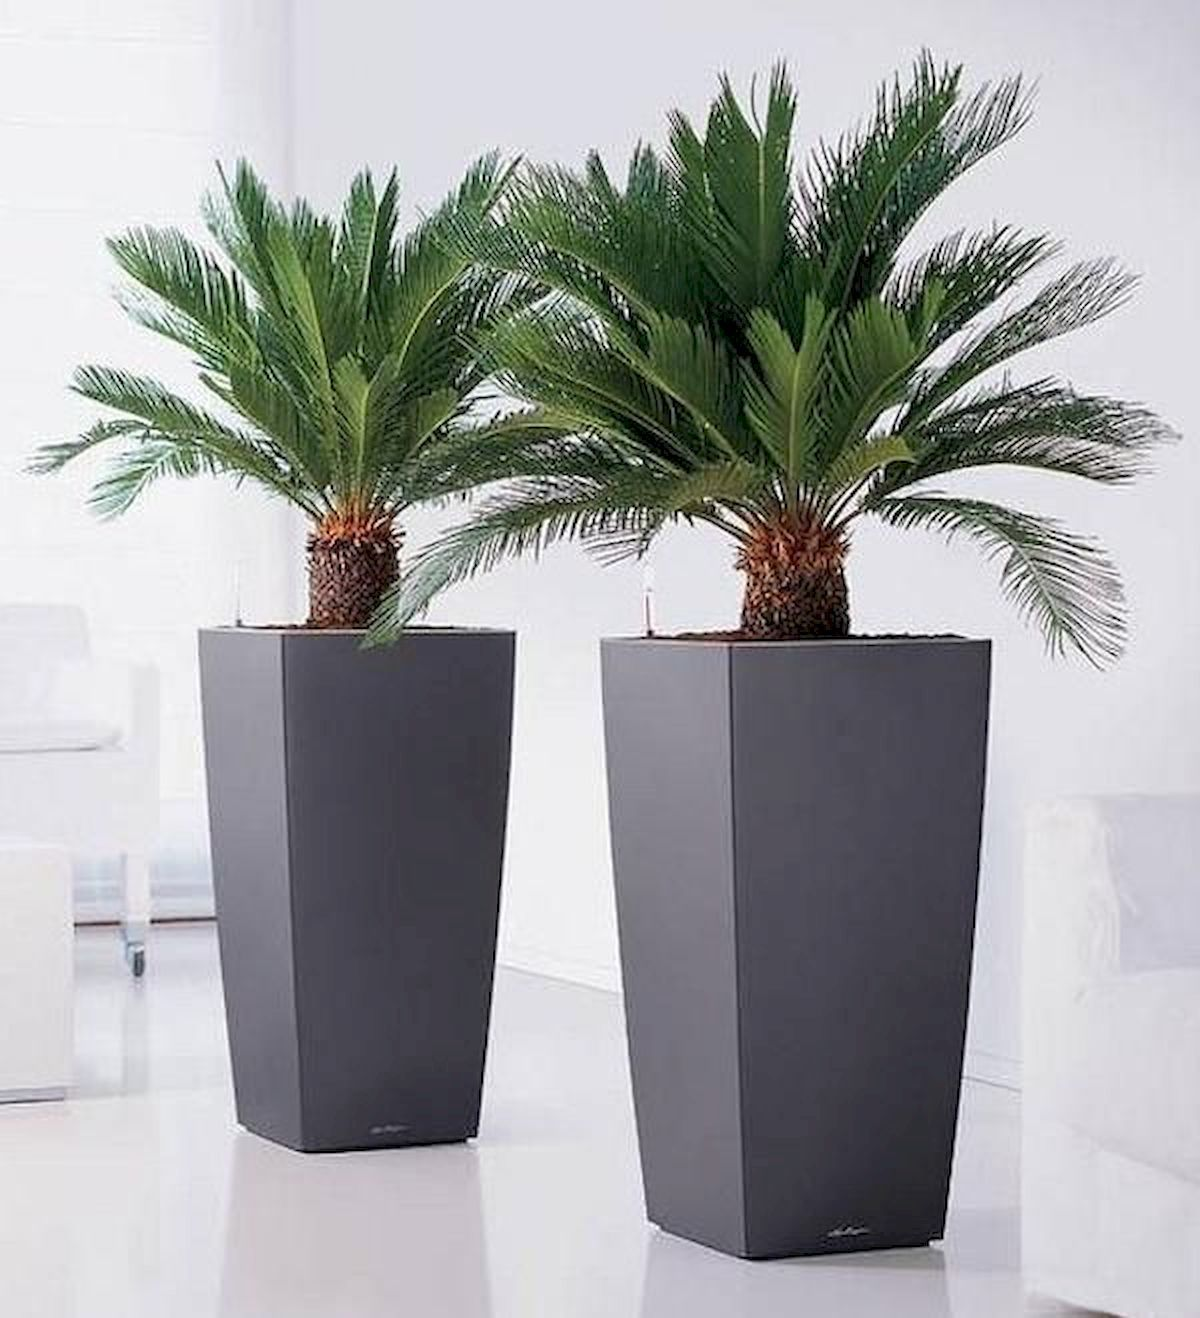 Gorgeous Unique Modern Precast Planters To Make Your Outdoors